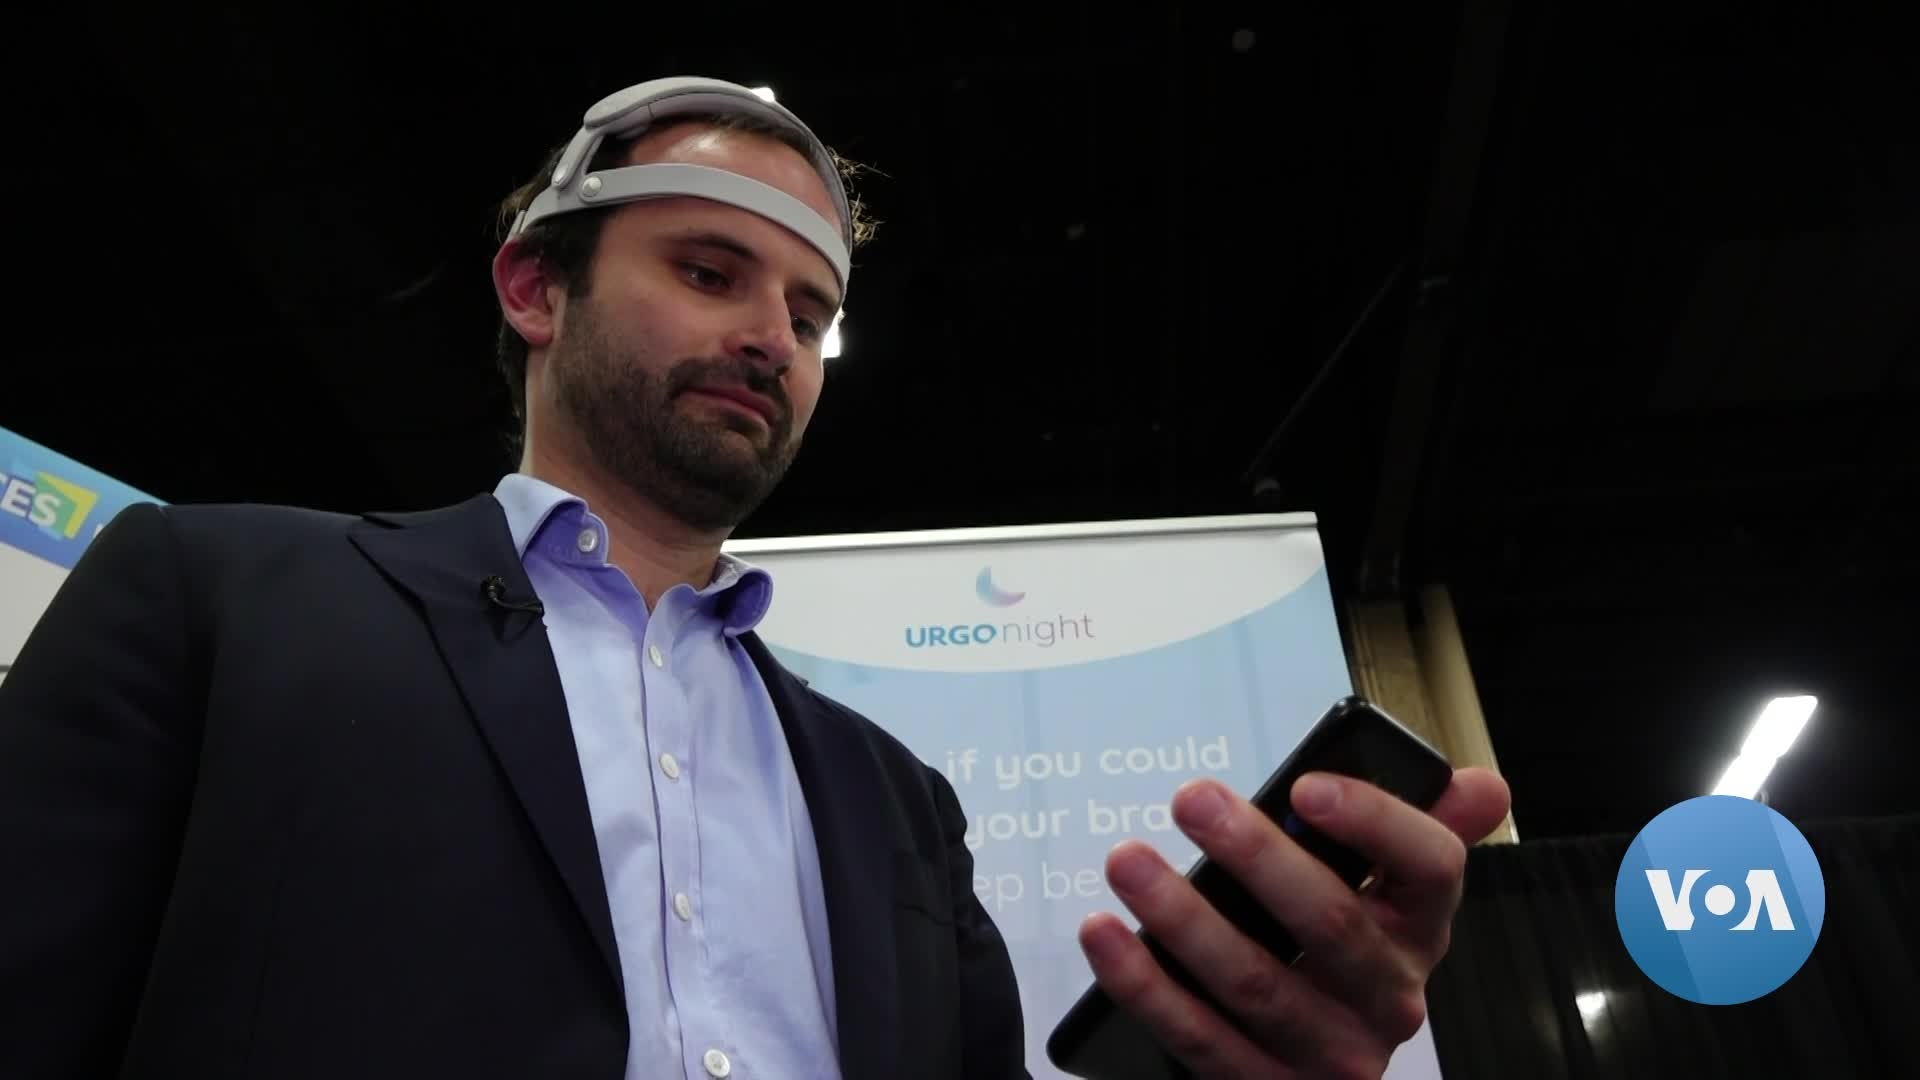 CES Presents Wearable Tech That Can Help Prevent and Predict Health Problems